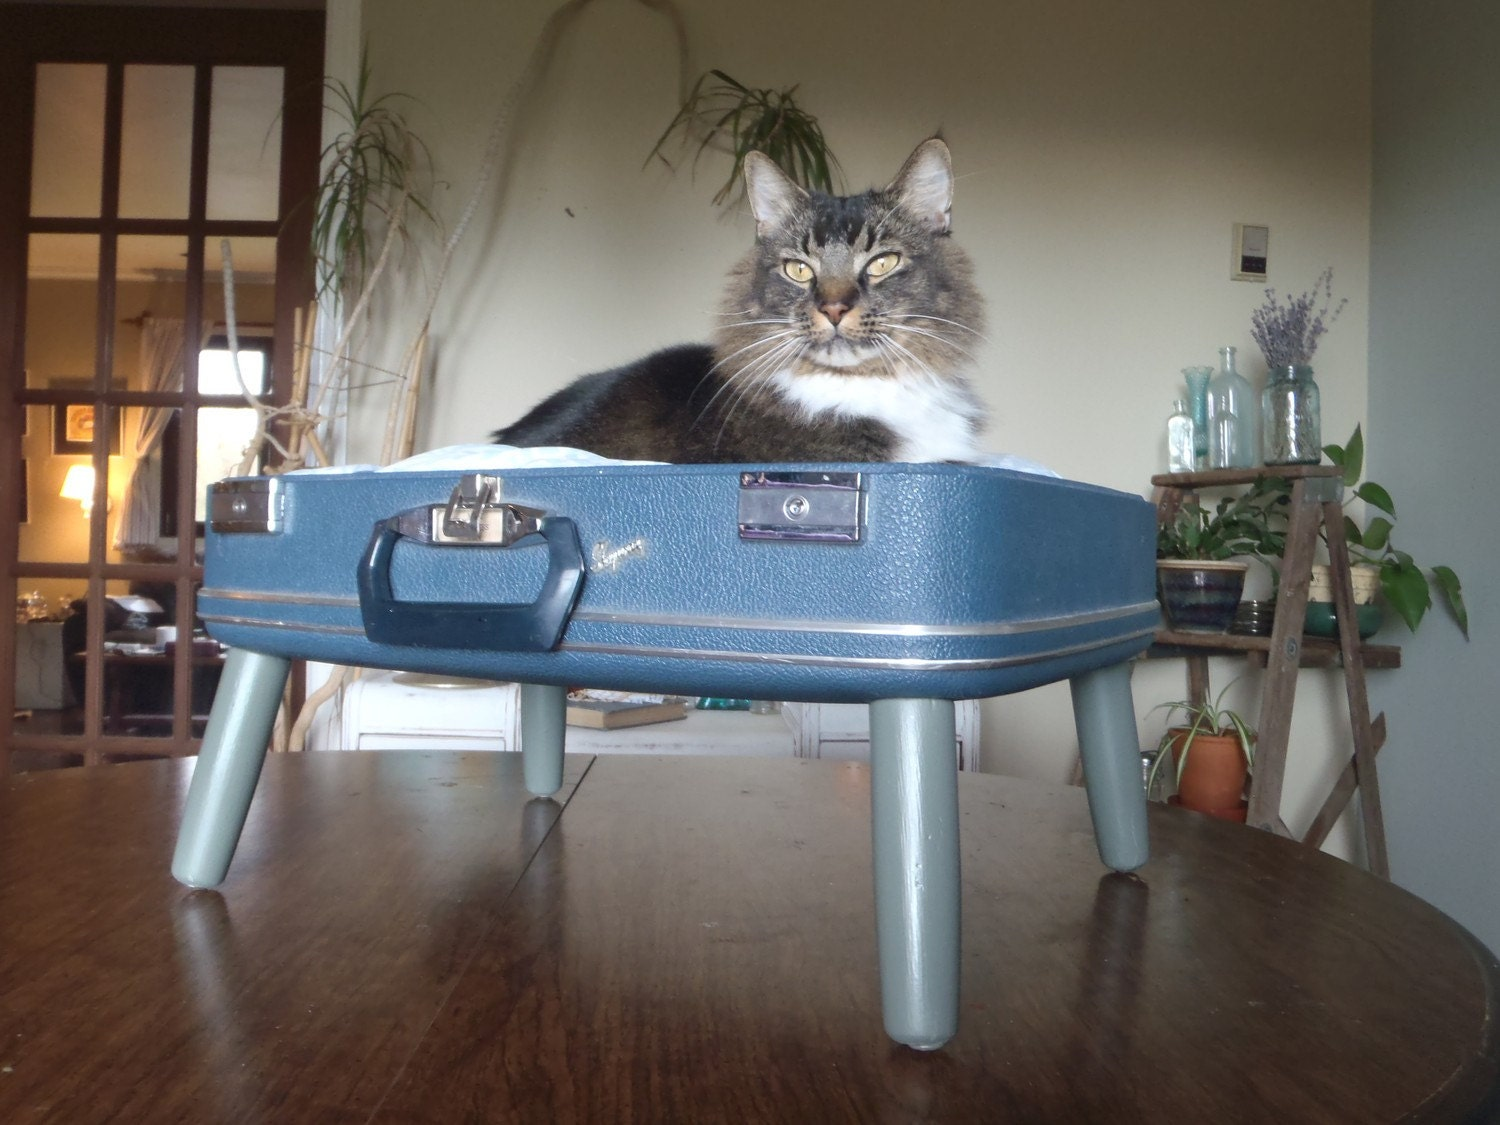 Lovable Luggage Pet Bed - Navy, Grey and White - Retro Modern - 2 dollars goes to carescatshelter